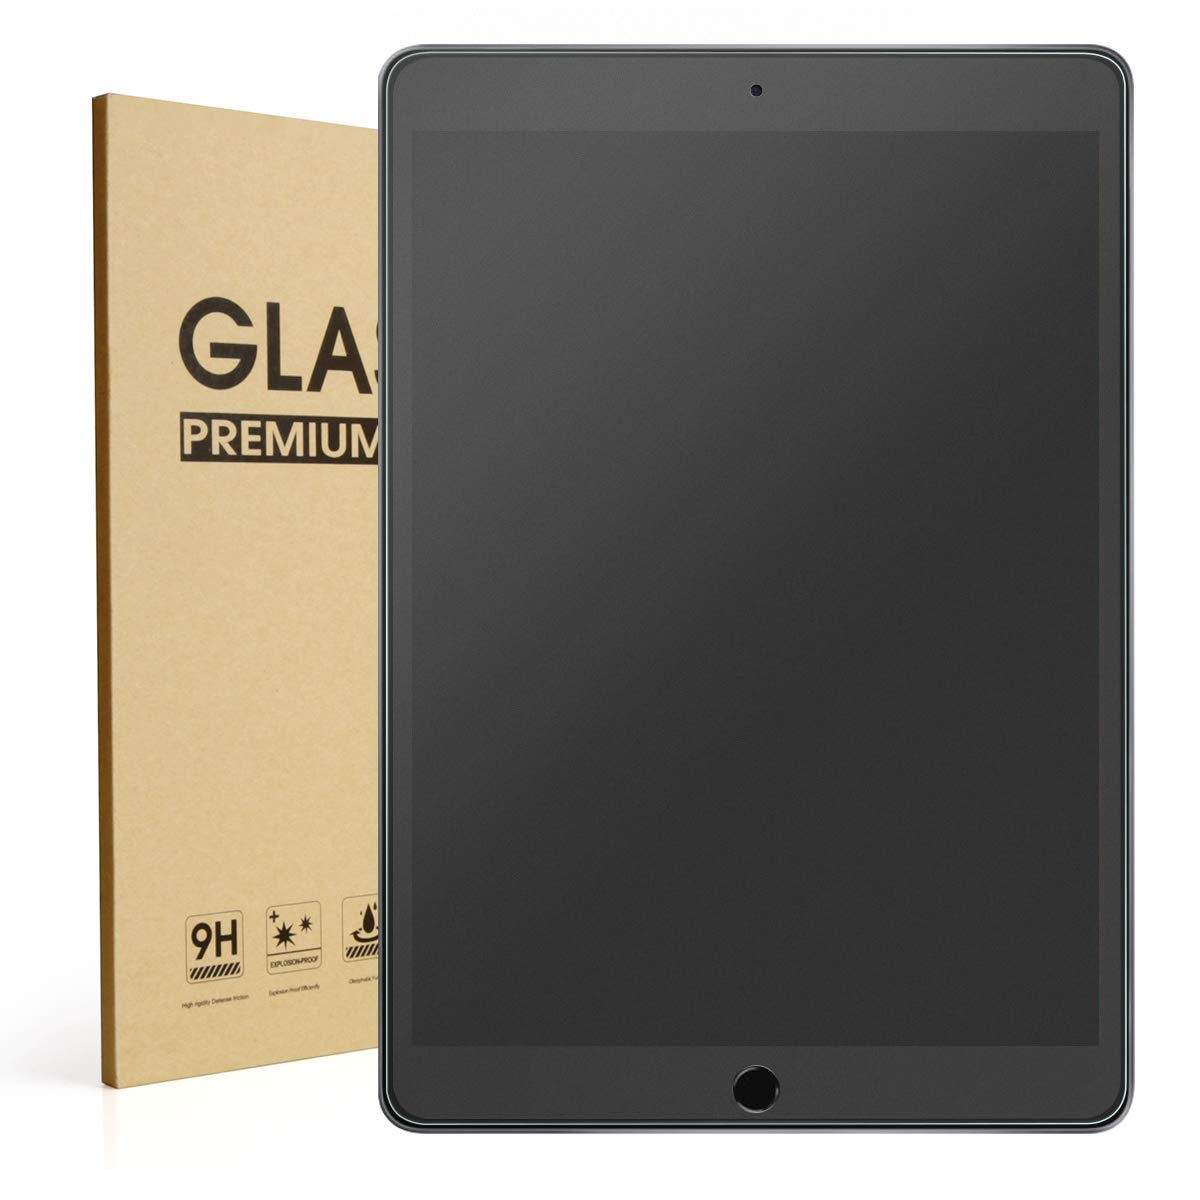 """Mothca Matte Screen Protector for iPad 10.2"""" (7th Gen)(2019), Anti-Glare & Anti-Fingerprint No Dazzling 9H Hardness HD Tempered Glass Shield Film, Smooth as Silk Amazing Touch"""